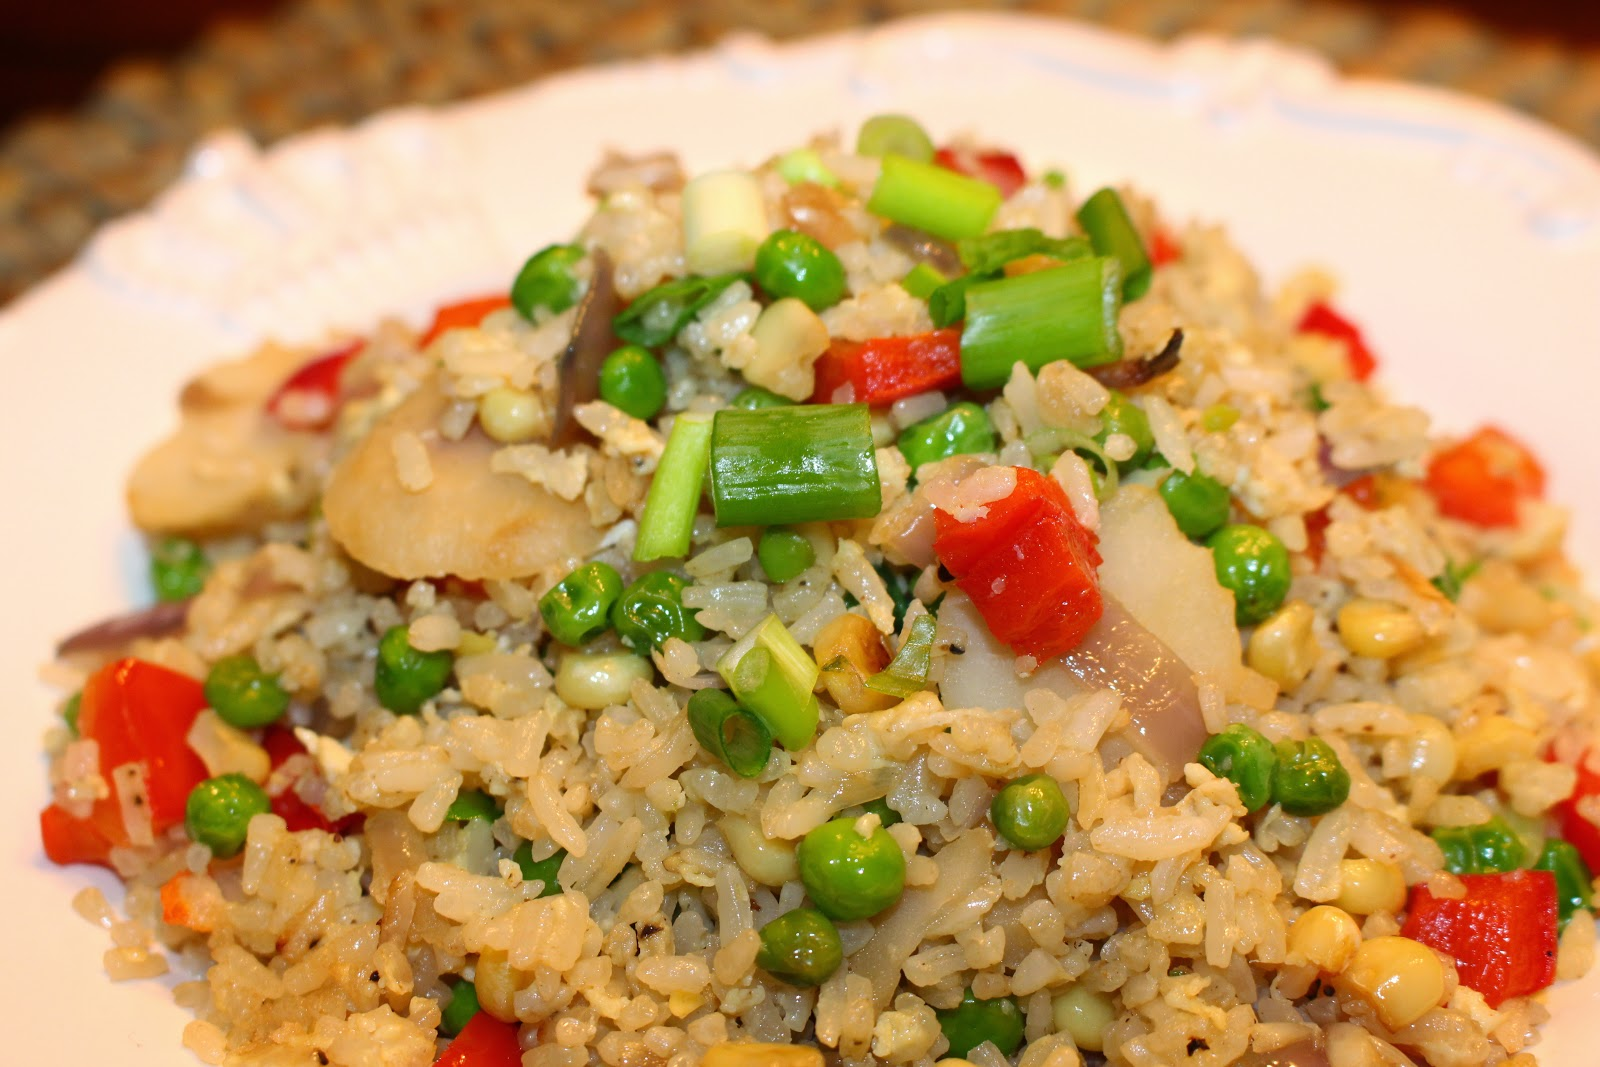 Kitchen cheetahs an improved way to make fried rice gluten free this is a super quick and easy one skillet meal unless you want to get all ambitious and make walnut shrimp or something hmmm that sounds good ccuart Gallery